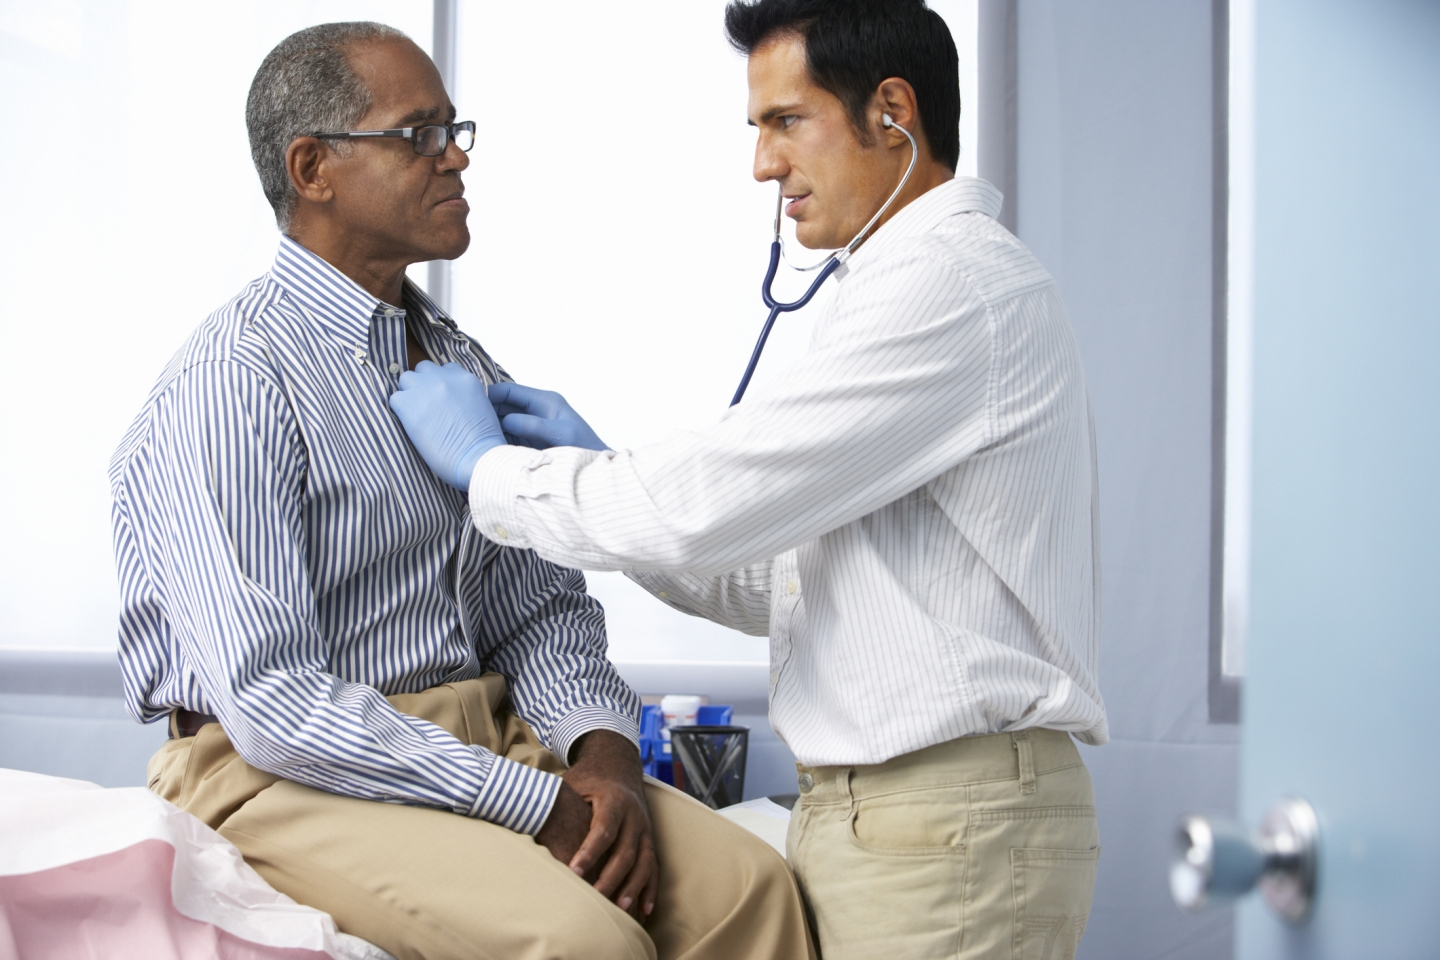 Doctor listens to a patient's chest using a stethoscope